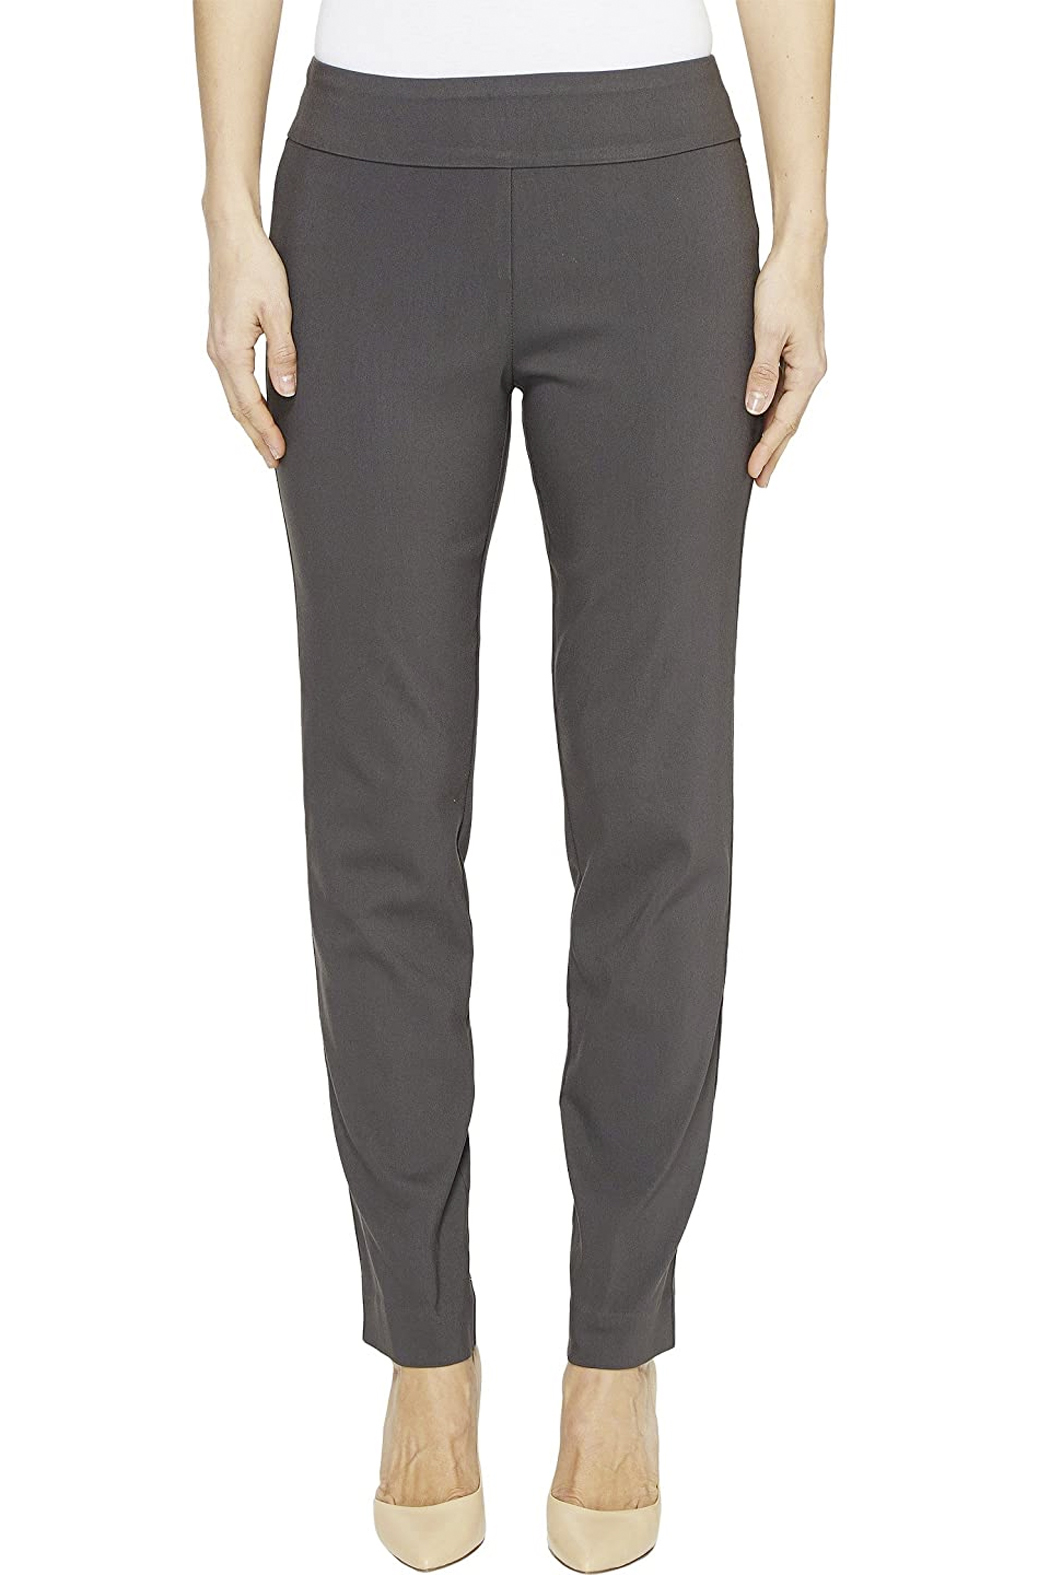 Krazy Larry Pant P-507 - Front Cropped Image